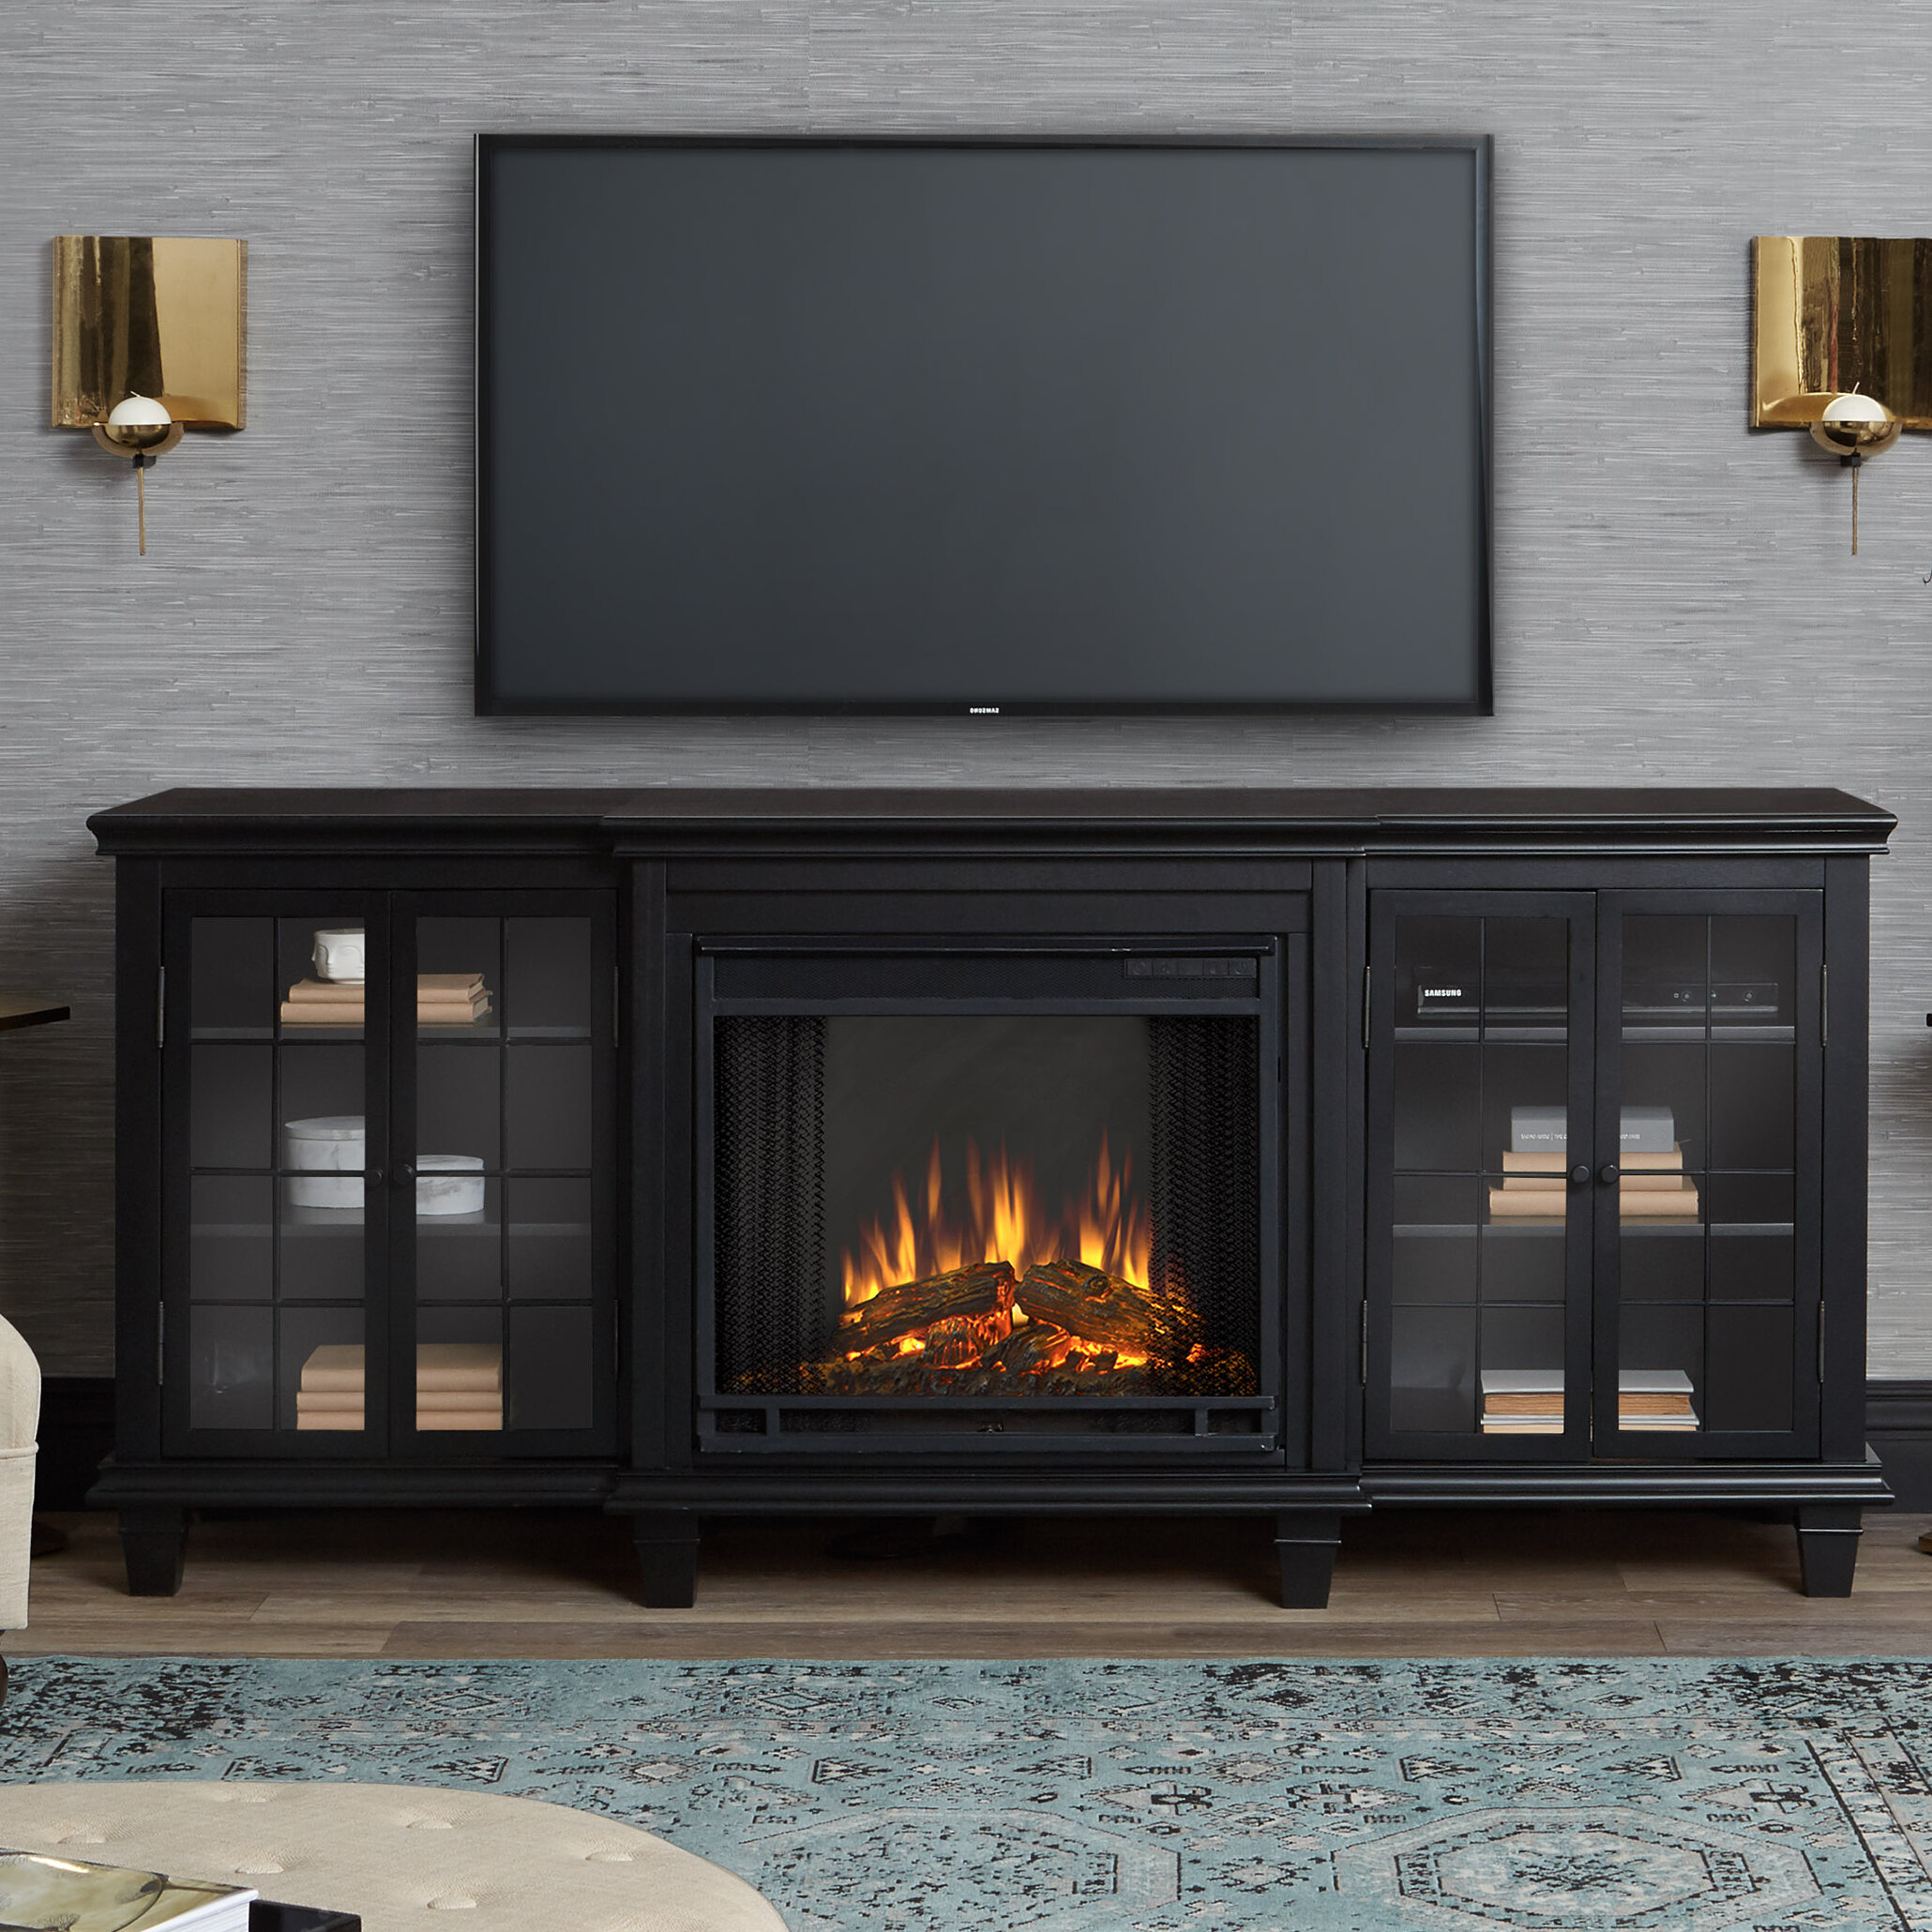 tv white unique stand combined with marvelous wall stan electrick electric rock fireplace brown painted furniture tc corner plus